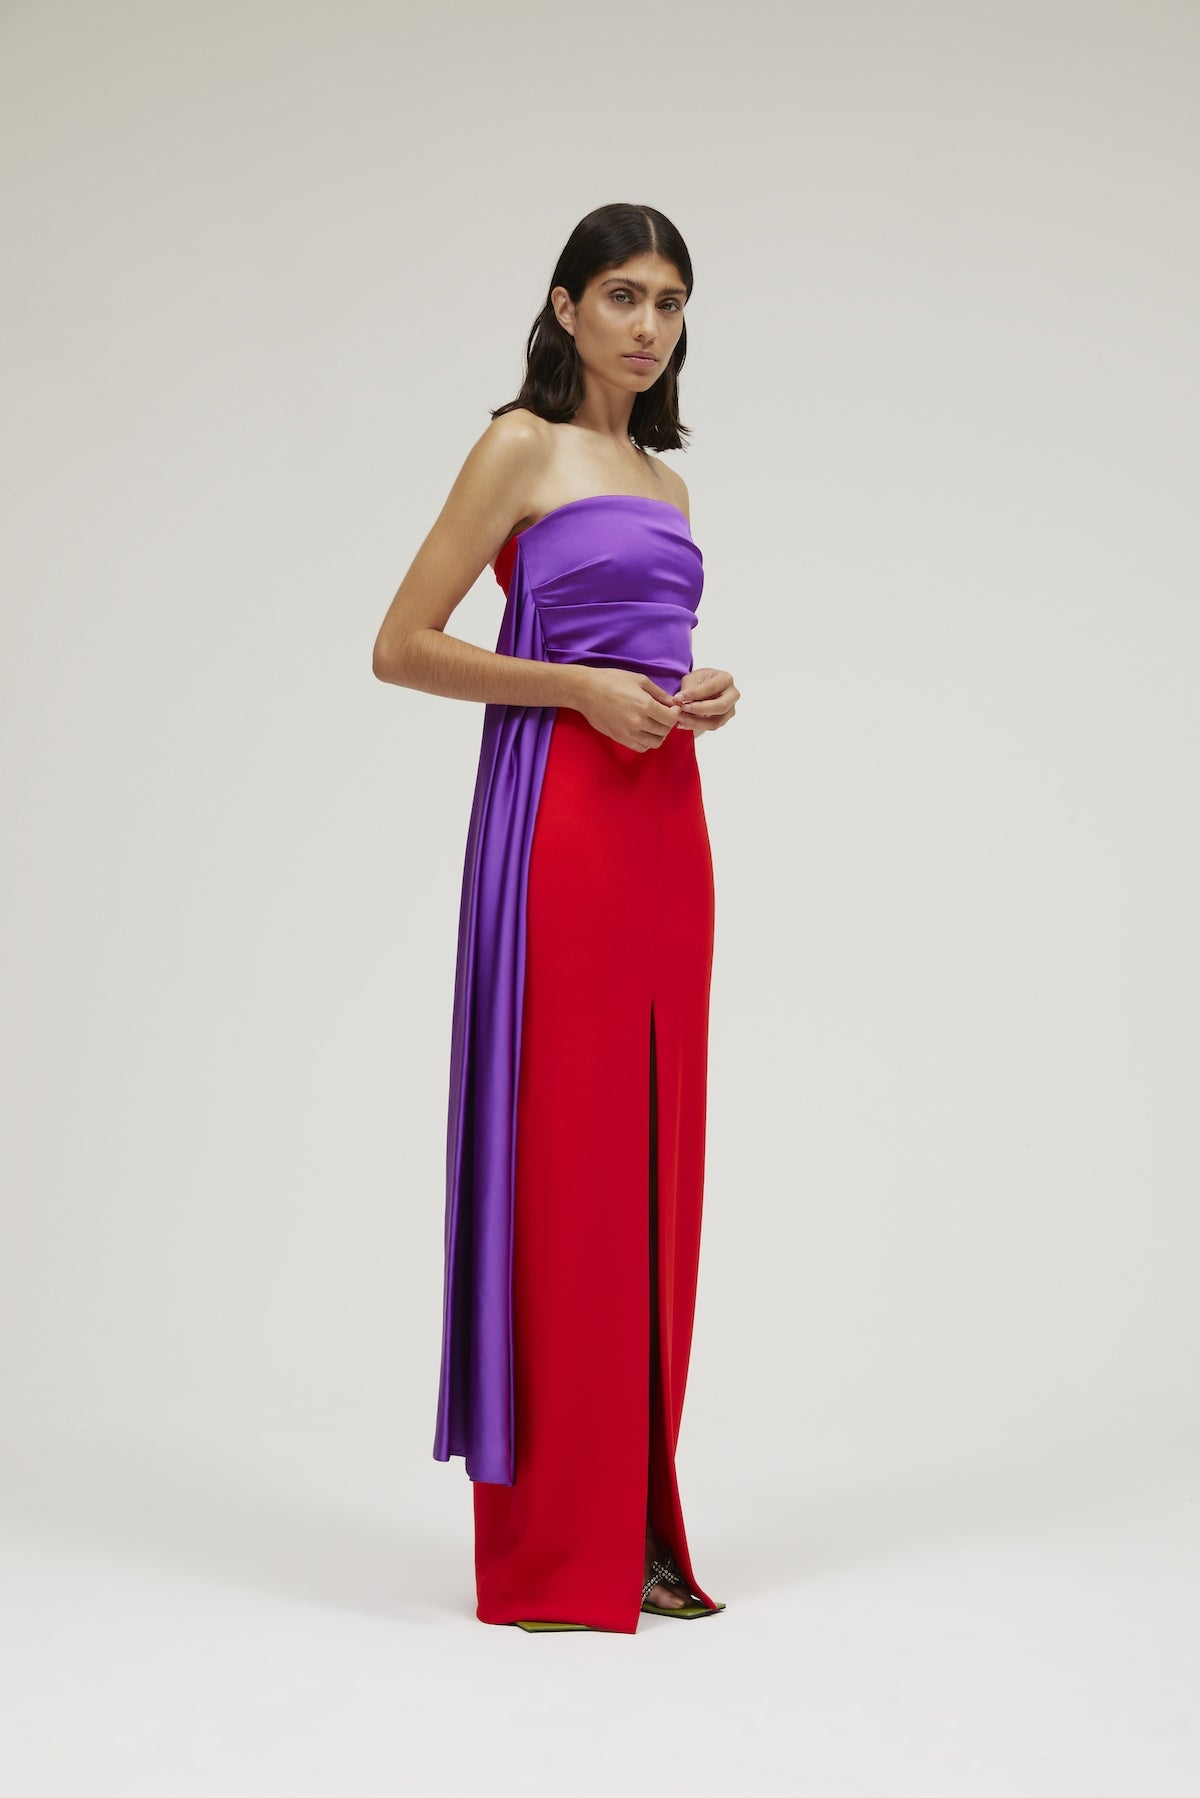 The Harlow Dress in Ultra Purple & True Red